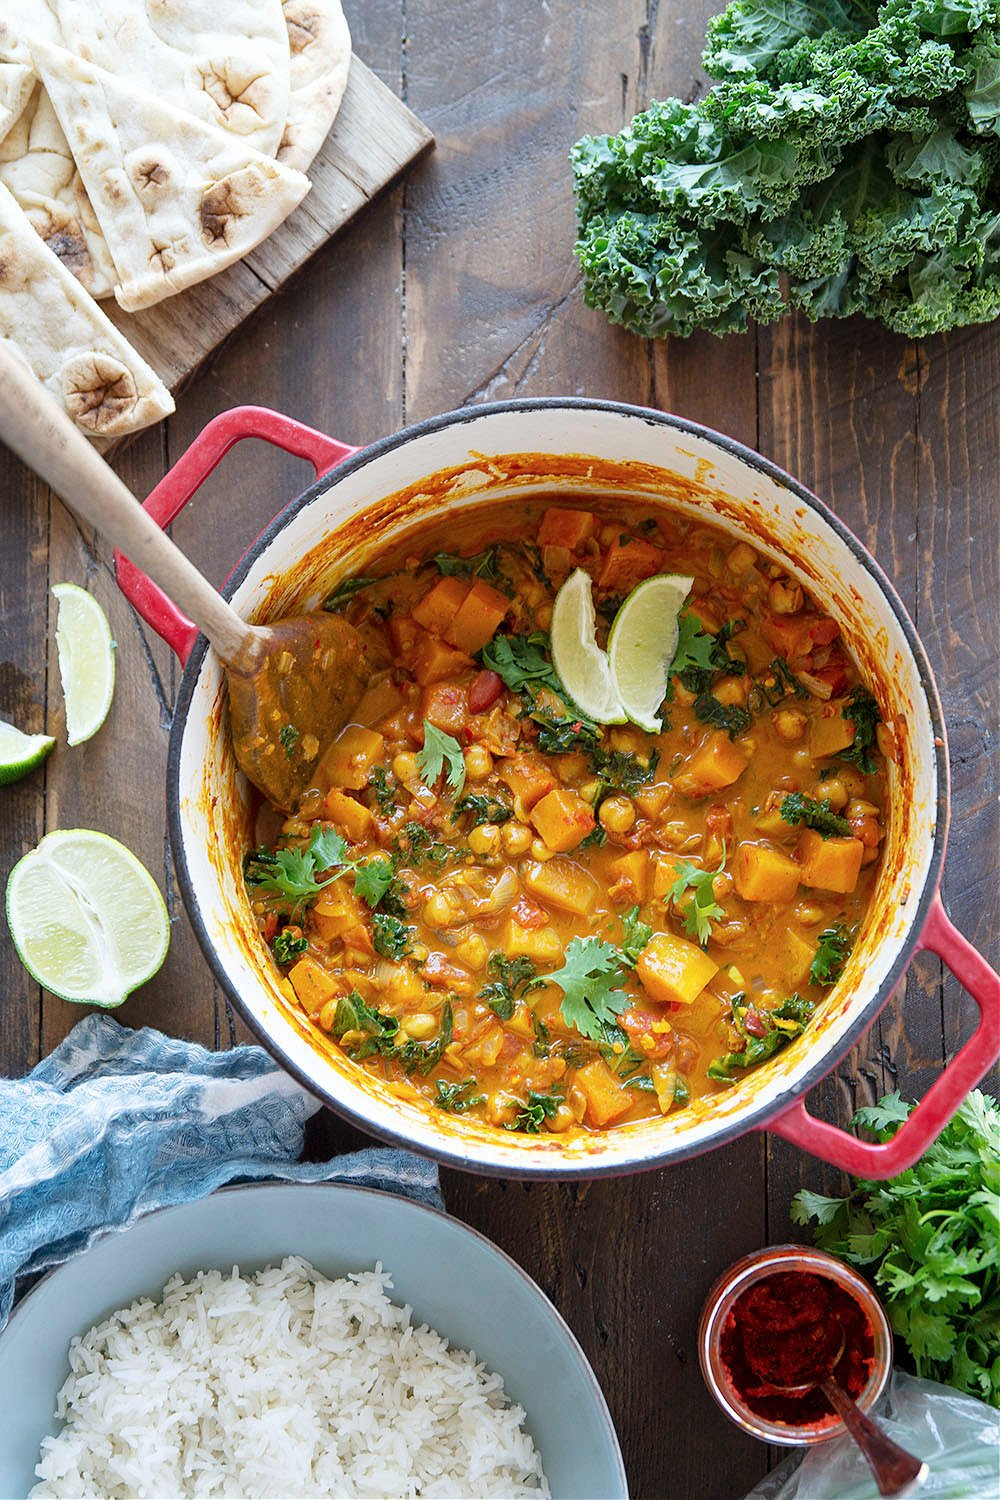 Loaded with soft butternut squash, tender chickpeas, and a punch of spicy harissa, this chickpea butternut squash curry is an incredibly hearty dinner that's vegan-friendly and easy to pull together on a weeknight.